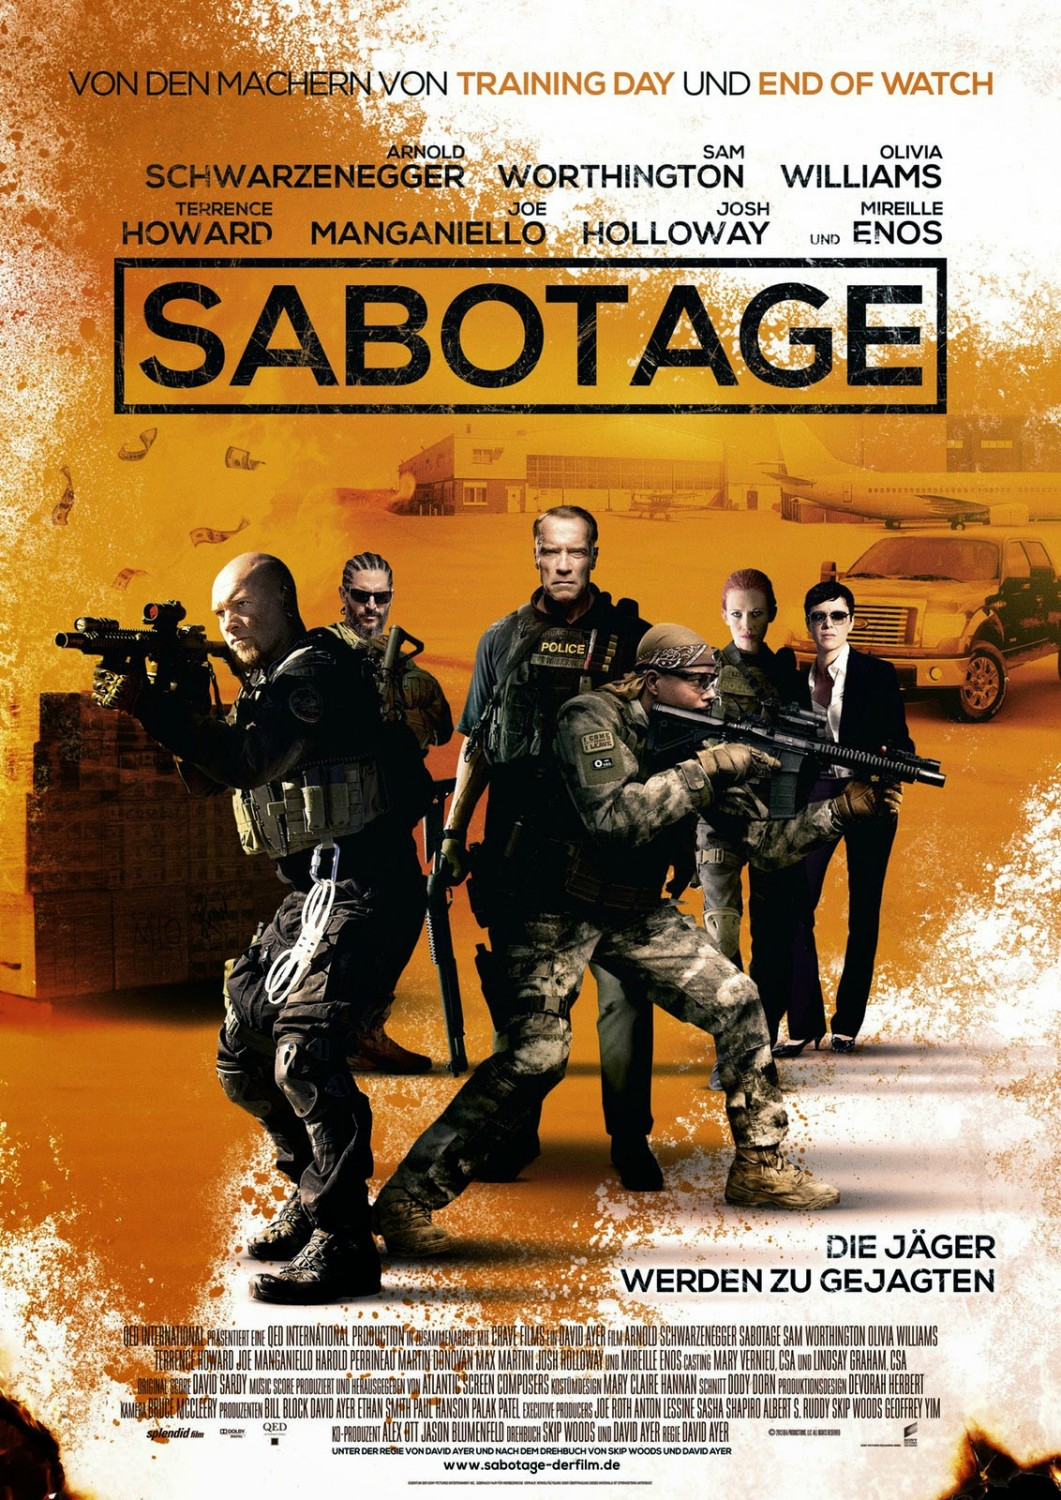 SABOTAGE-Official Poster Banner PROMO XLG-18MARCO2014